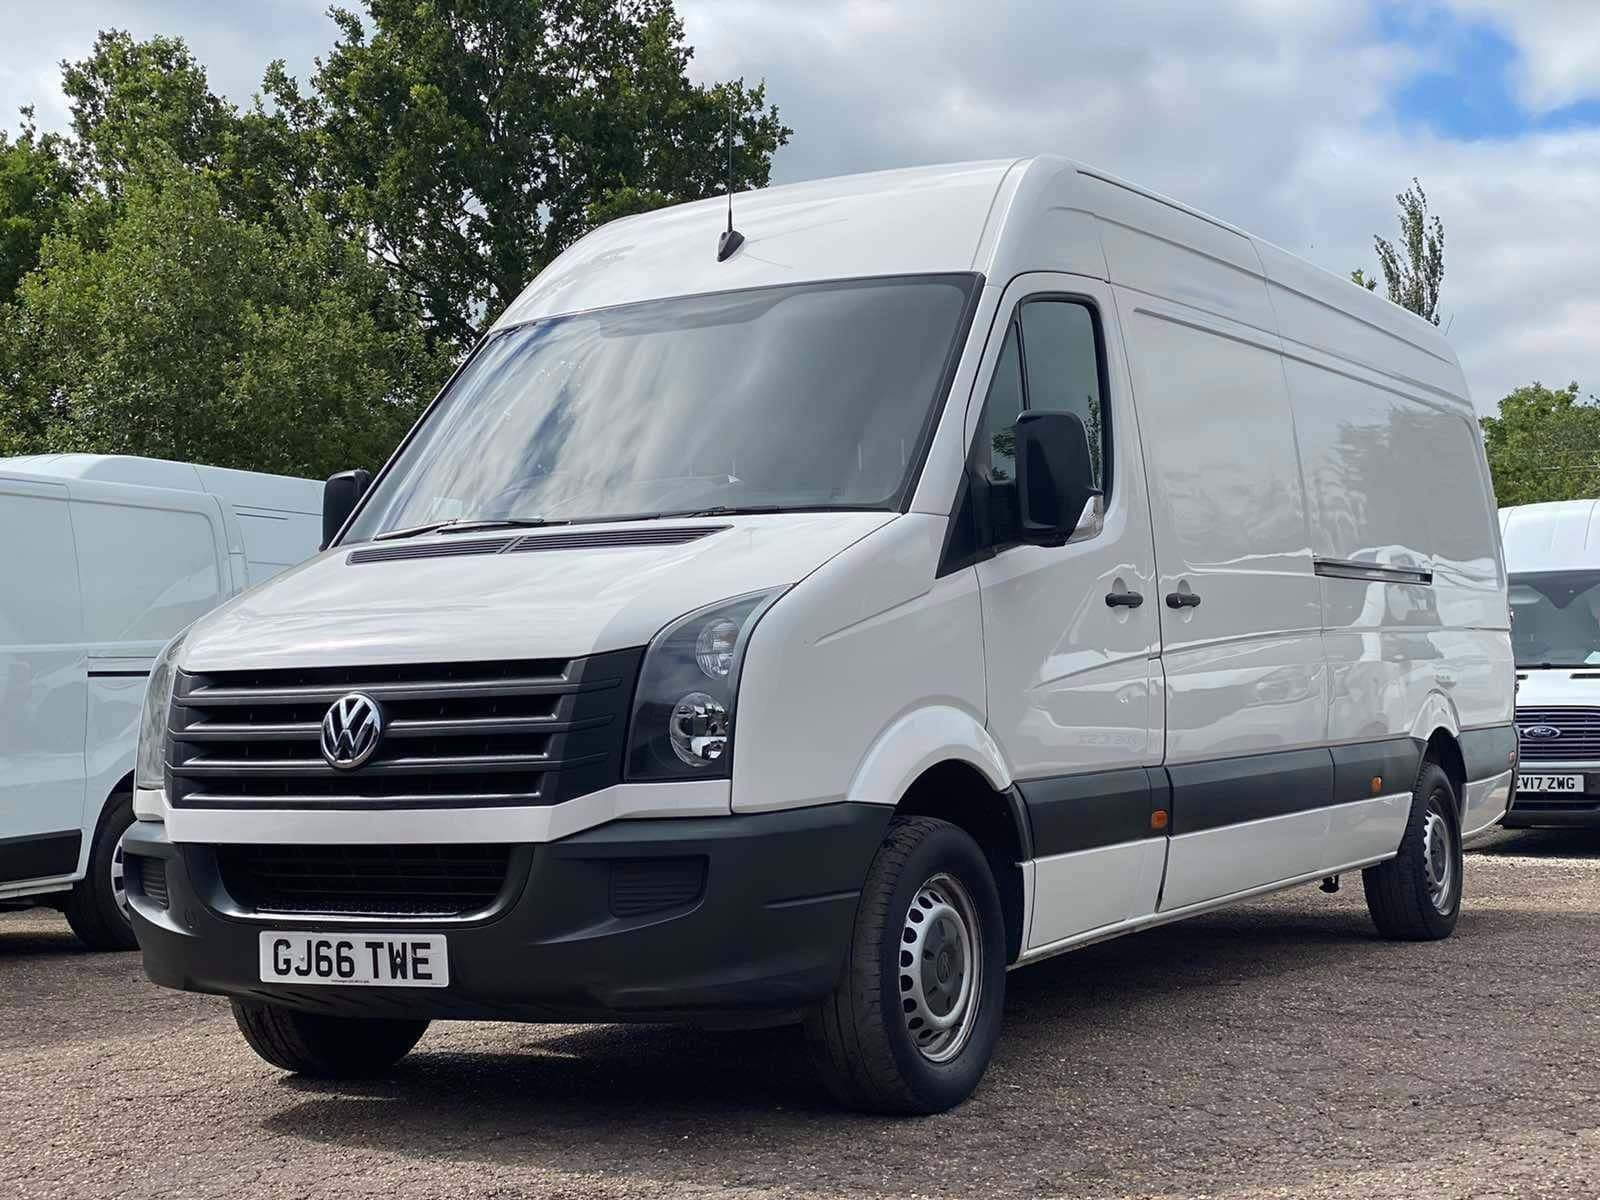 Volkswagen Crafter 2.0 TDI CR35 LWB High Roof Van 4dr (LWB)